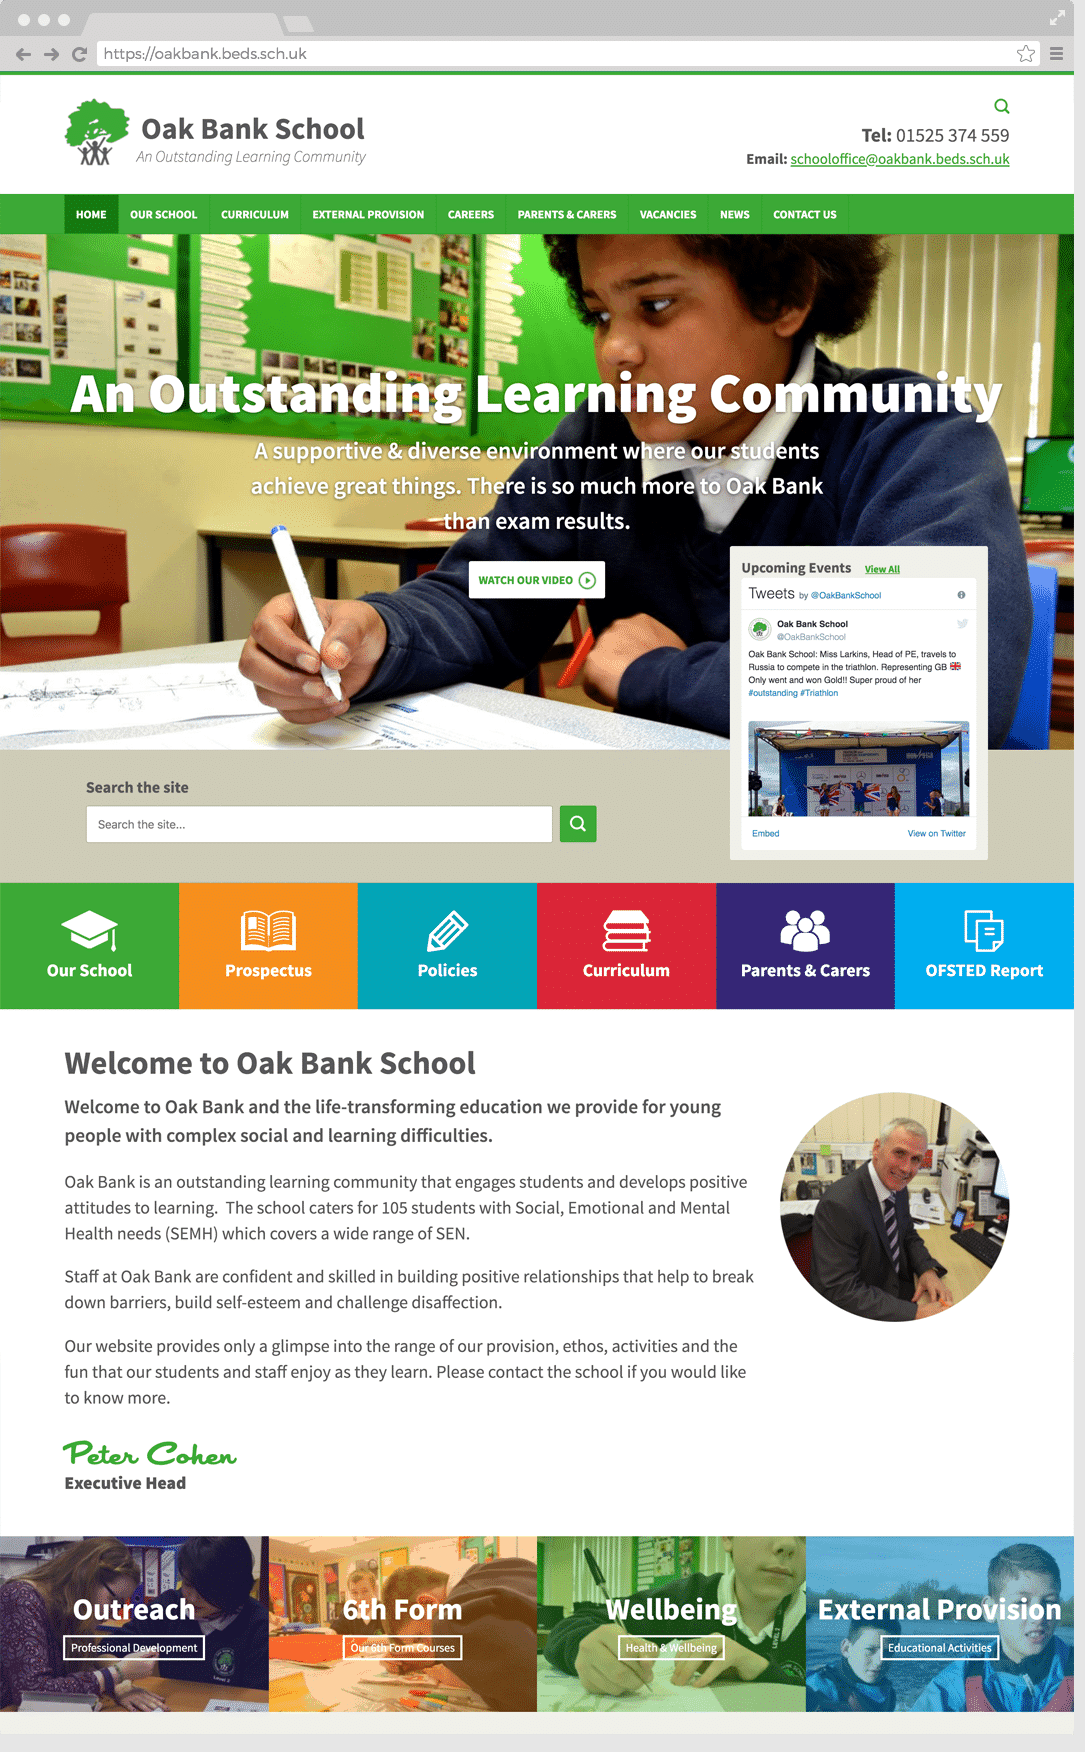 Oak Bank School website